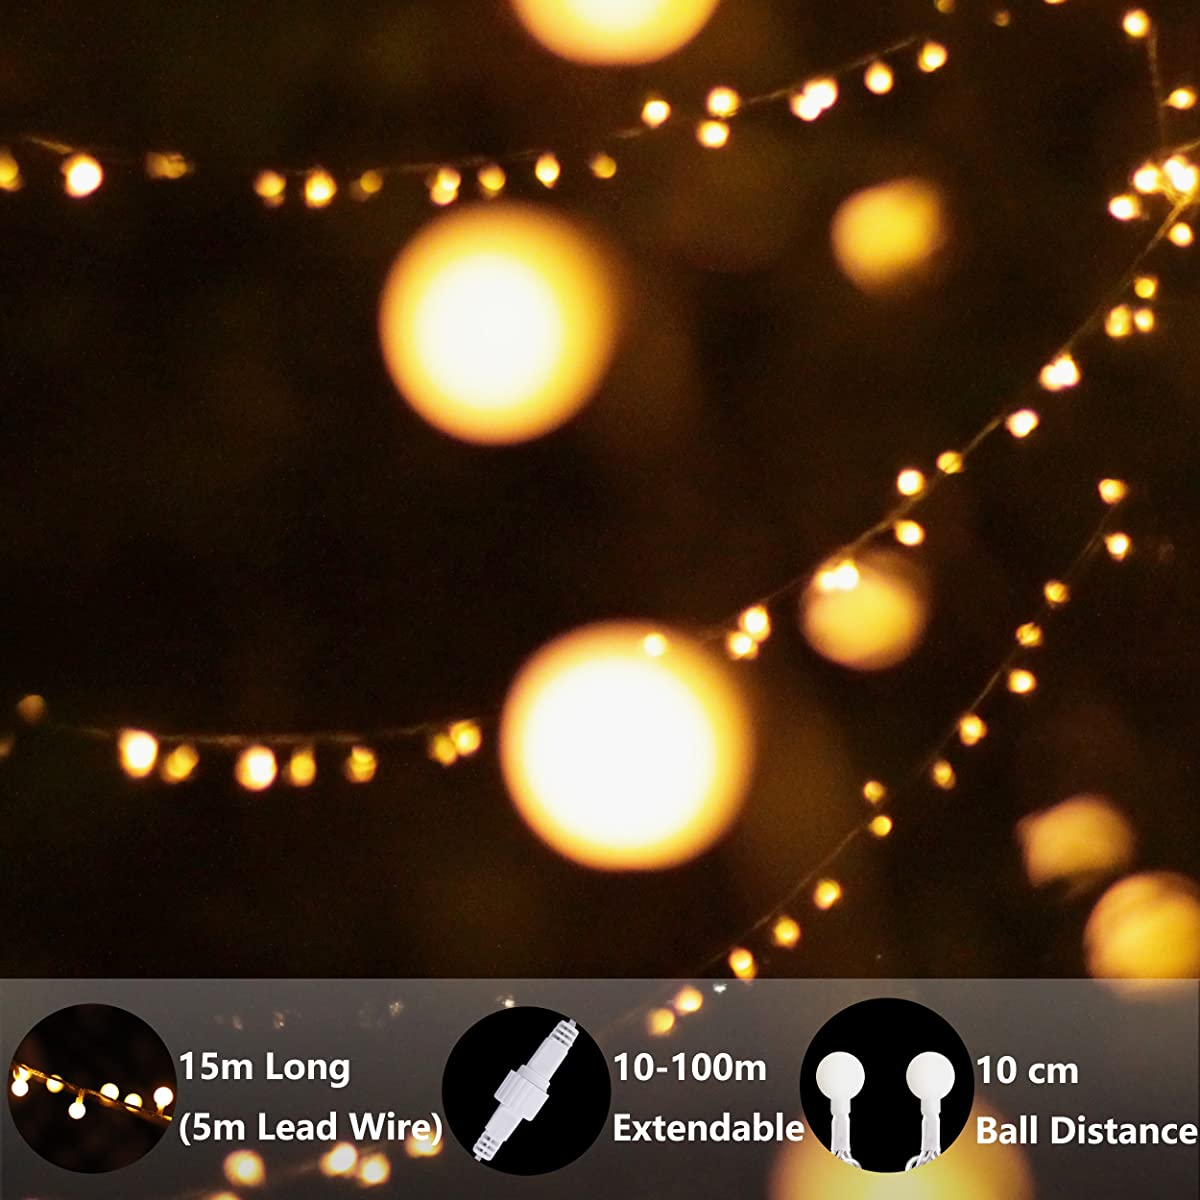 LED String Lights, by myCozyLite, Plug in String Lights, 49Ft 100 LED Warm White Globe lights with Timer, Waterproof, Perfect for Indoor and Outdoor Use with 30V Low Voltage Transformer, Extendable